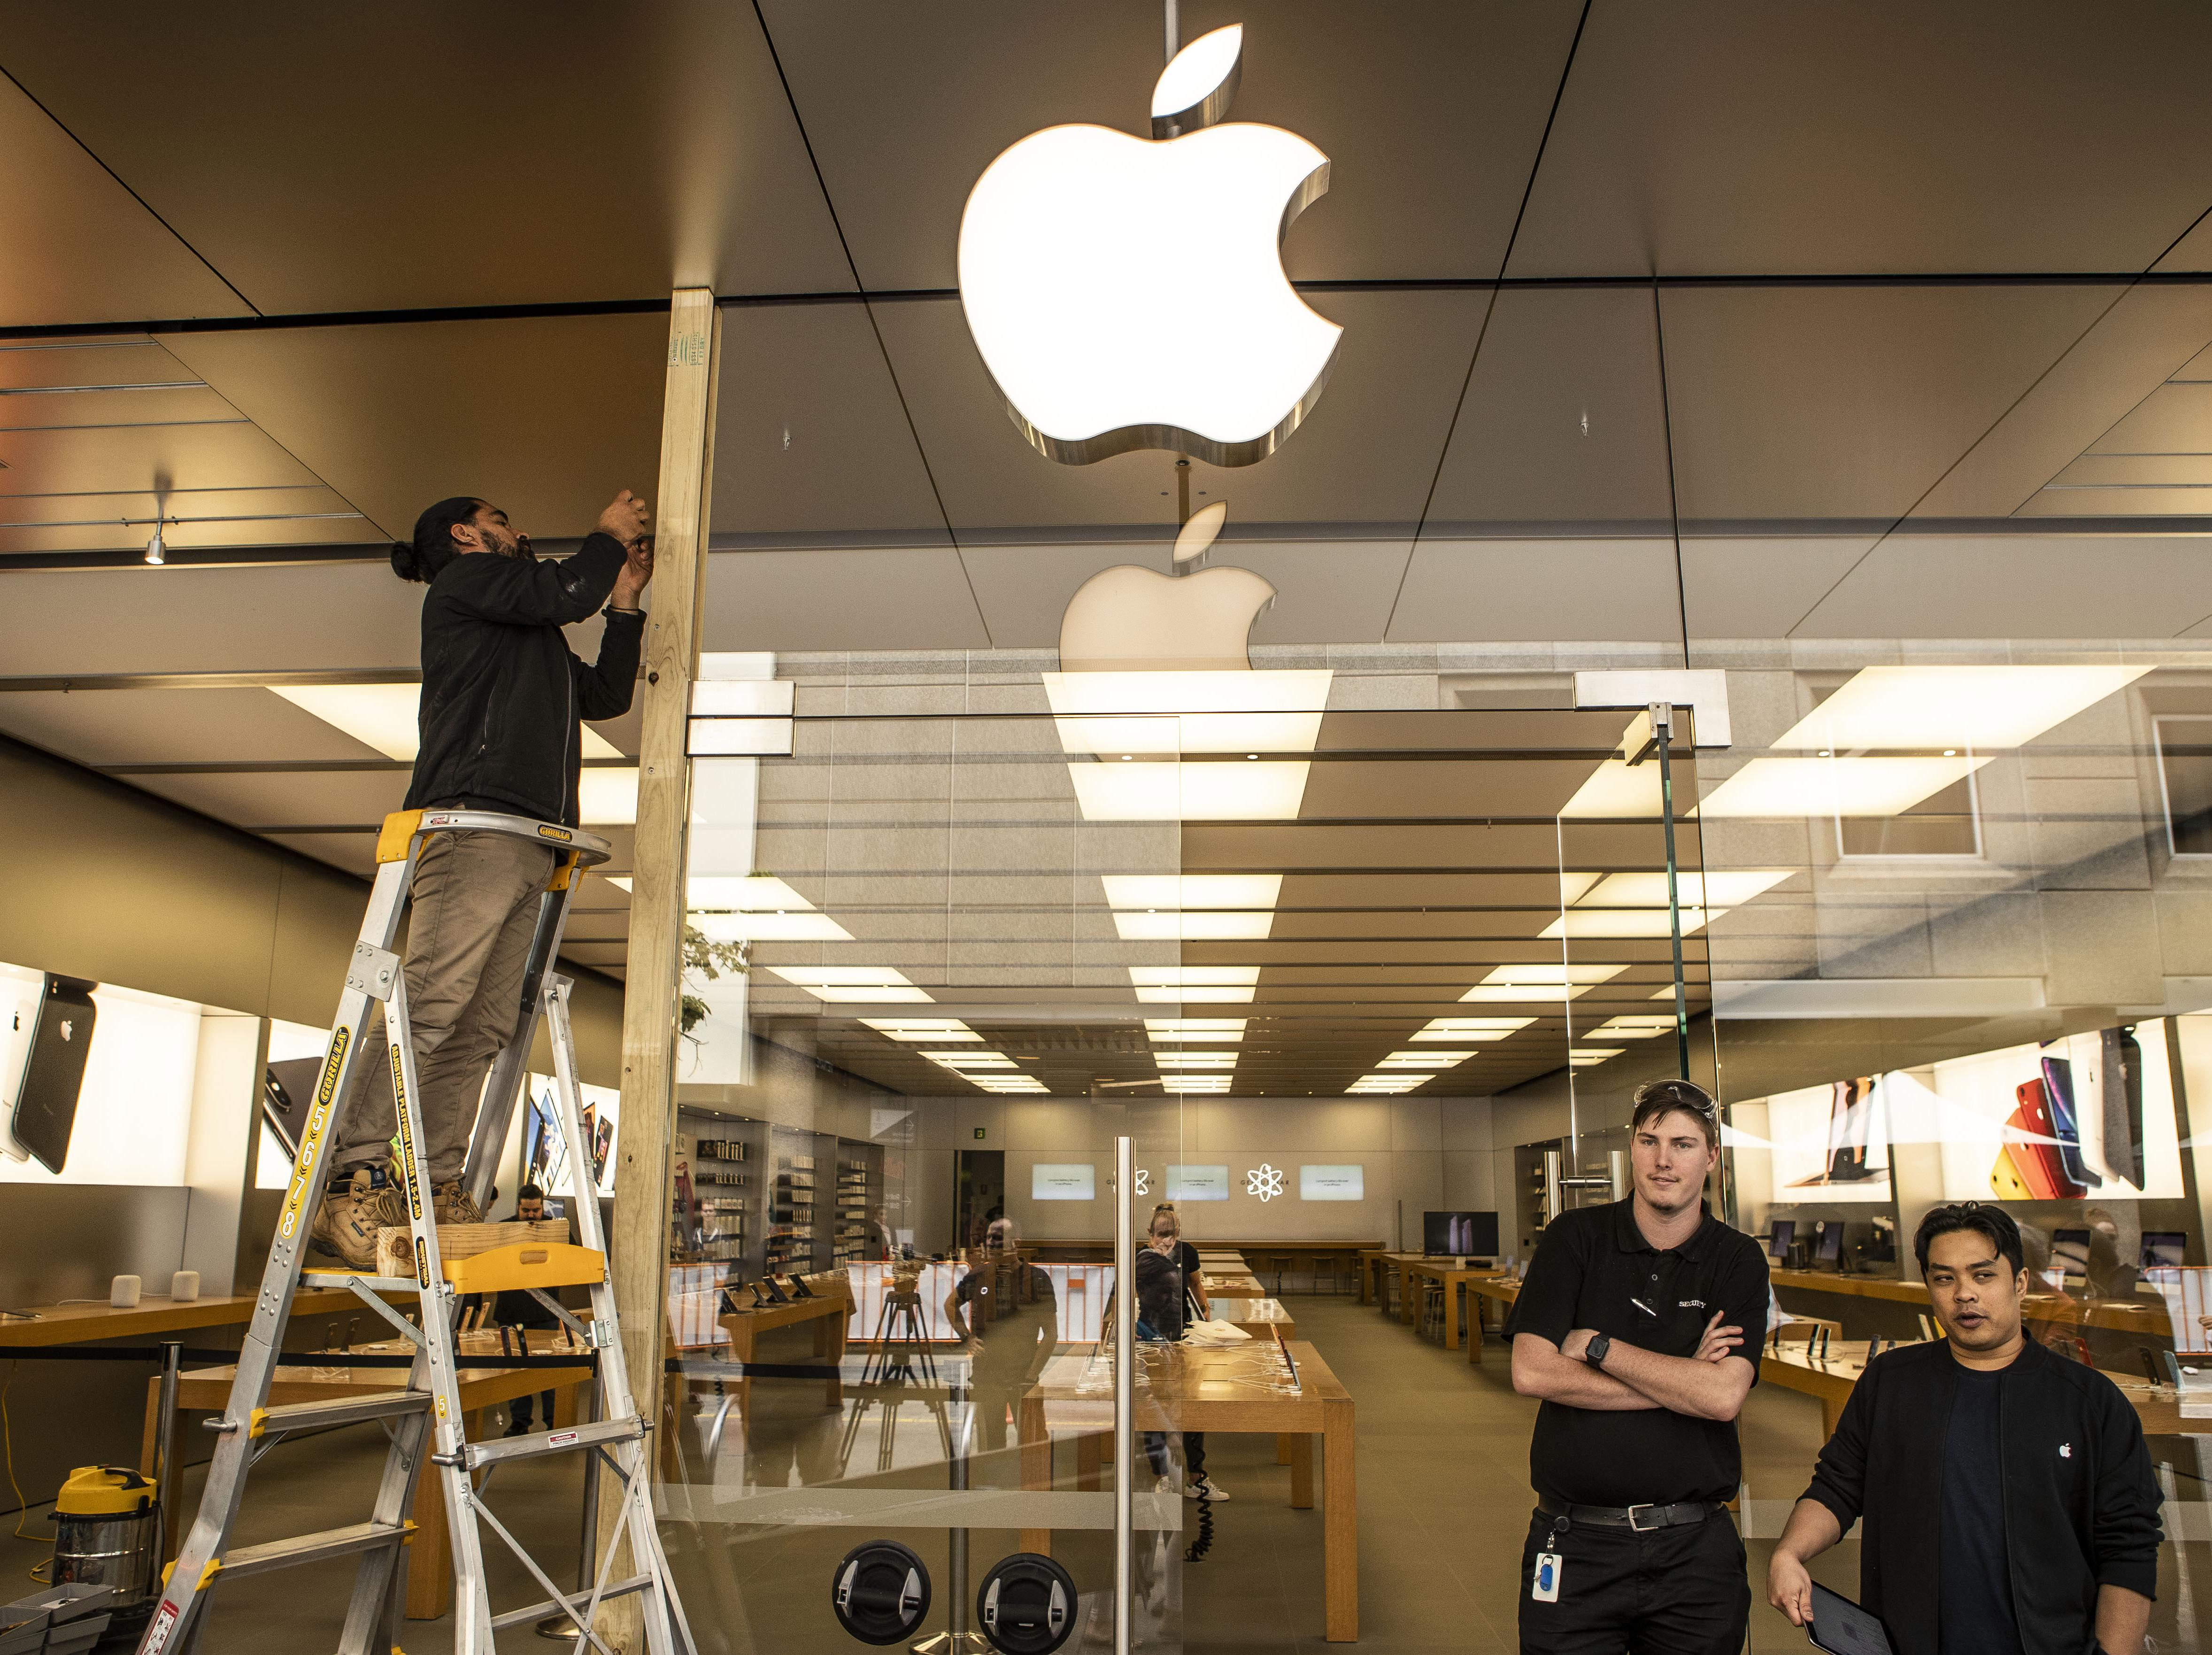 The scene at the Apple store in Perth today where a window was smashed.